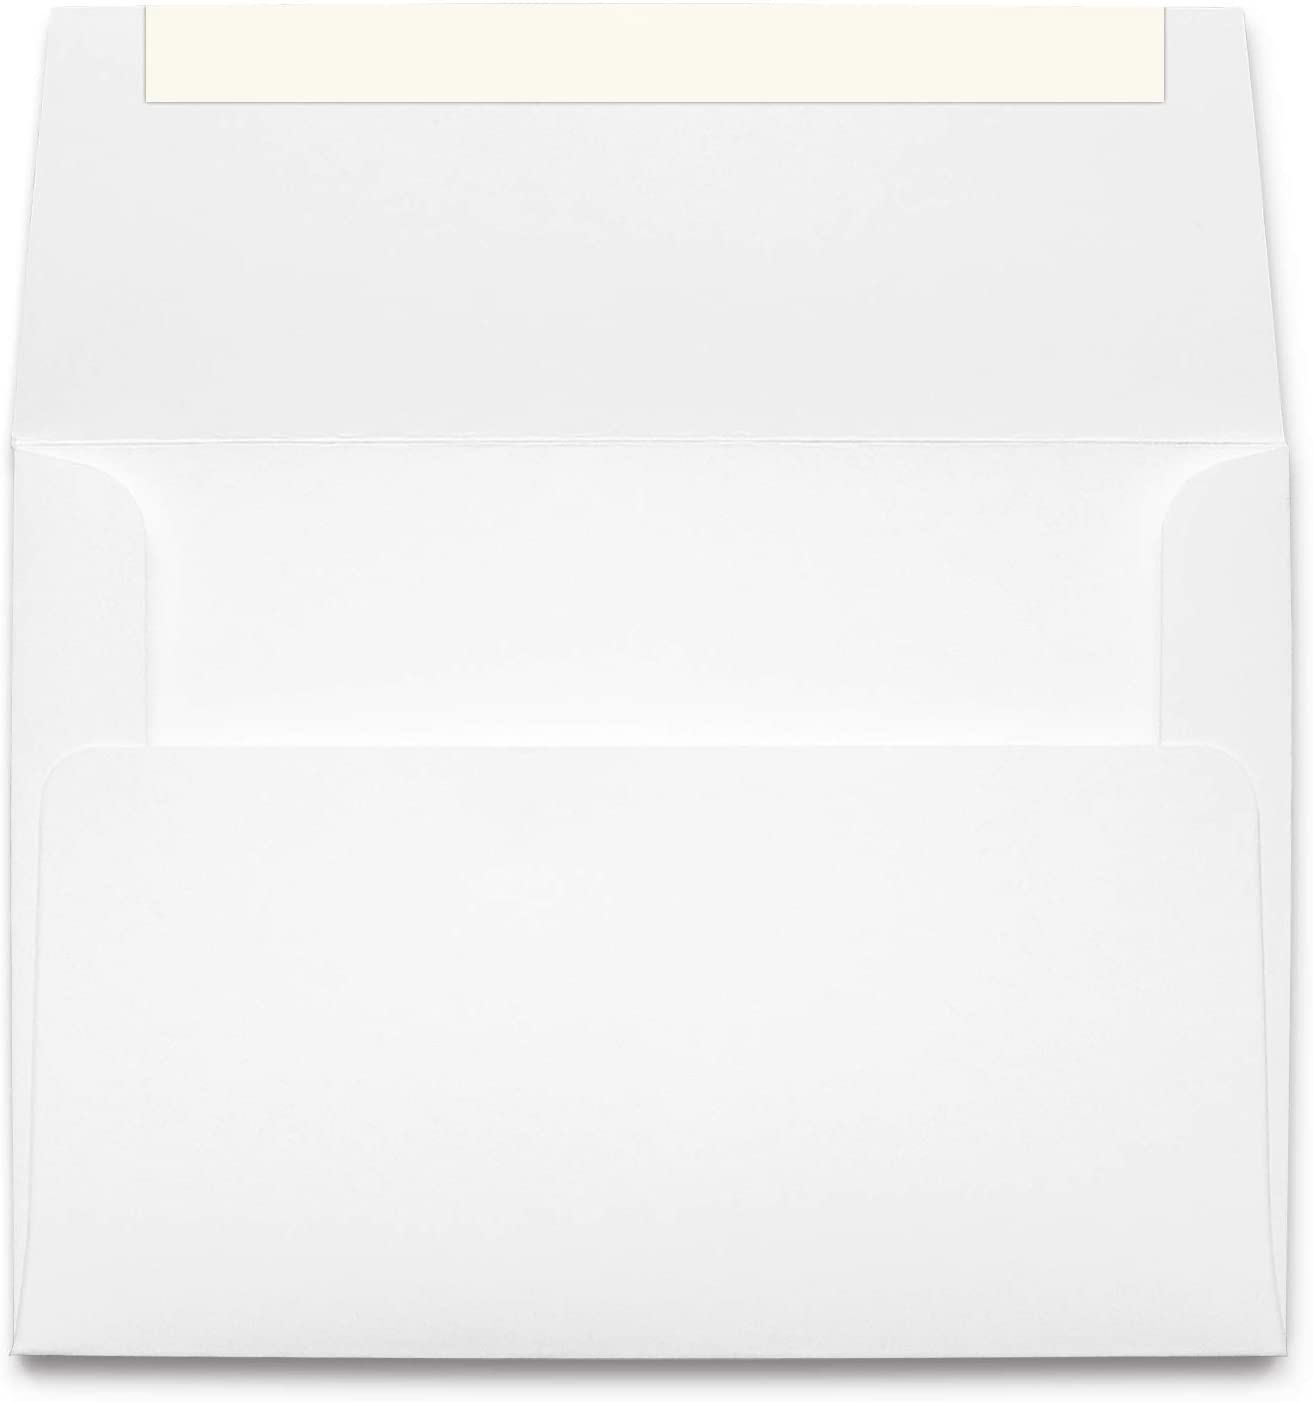 Heavyweight A2 White Self Seal Invitation Envelopes - Peel & Seal Strip - Made from Thick 70lb Stock (100 Envelopes)